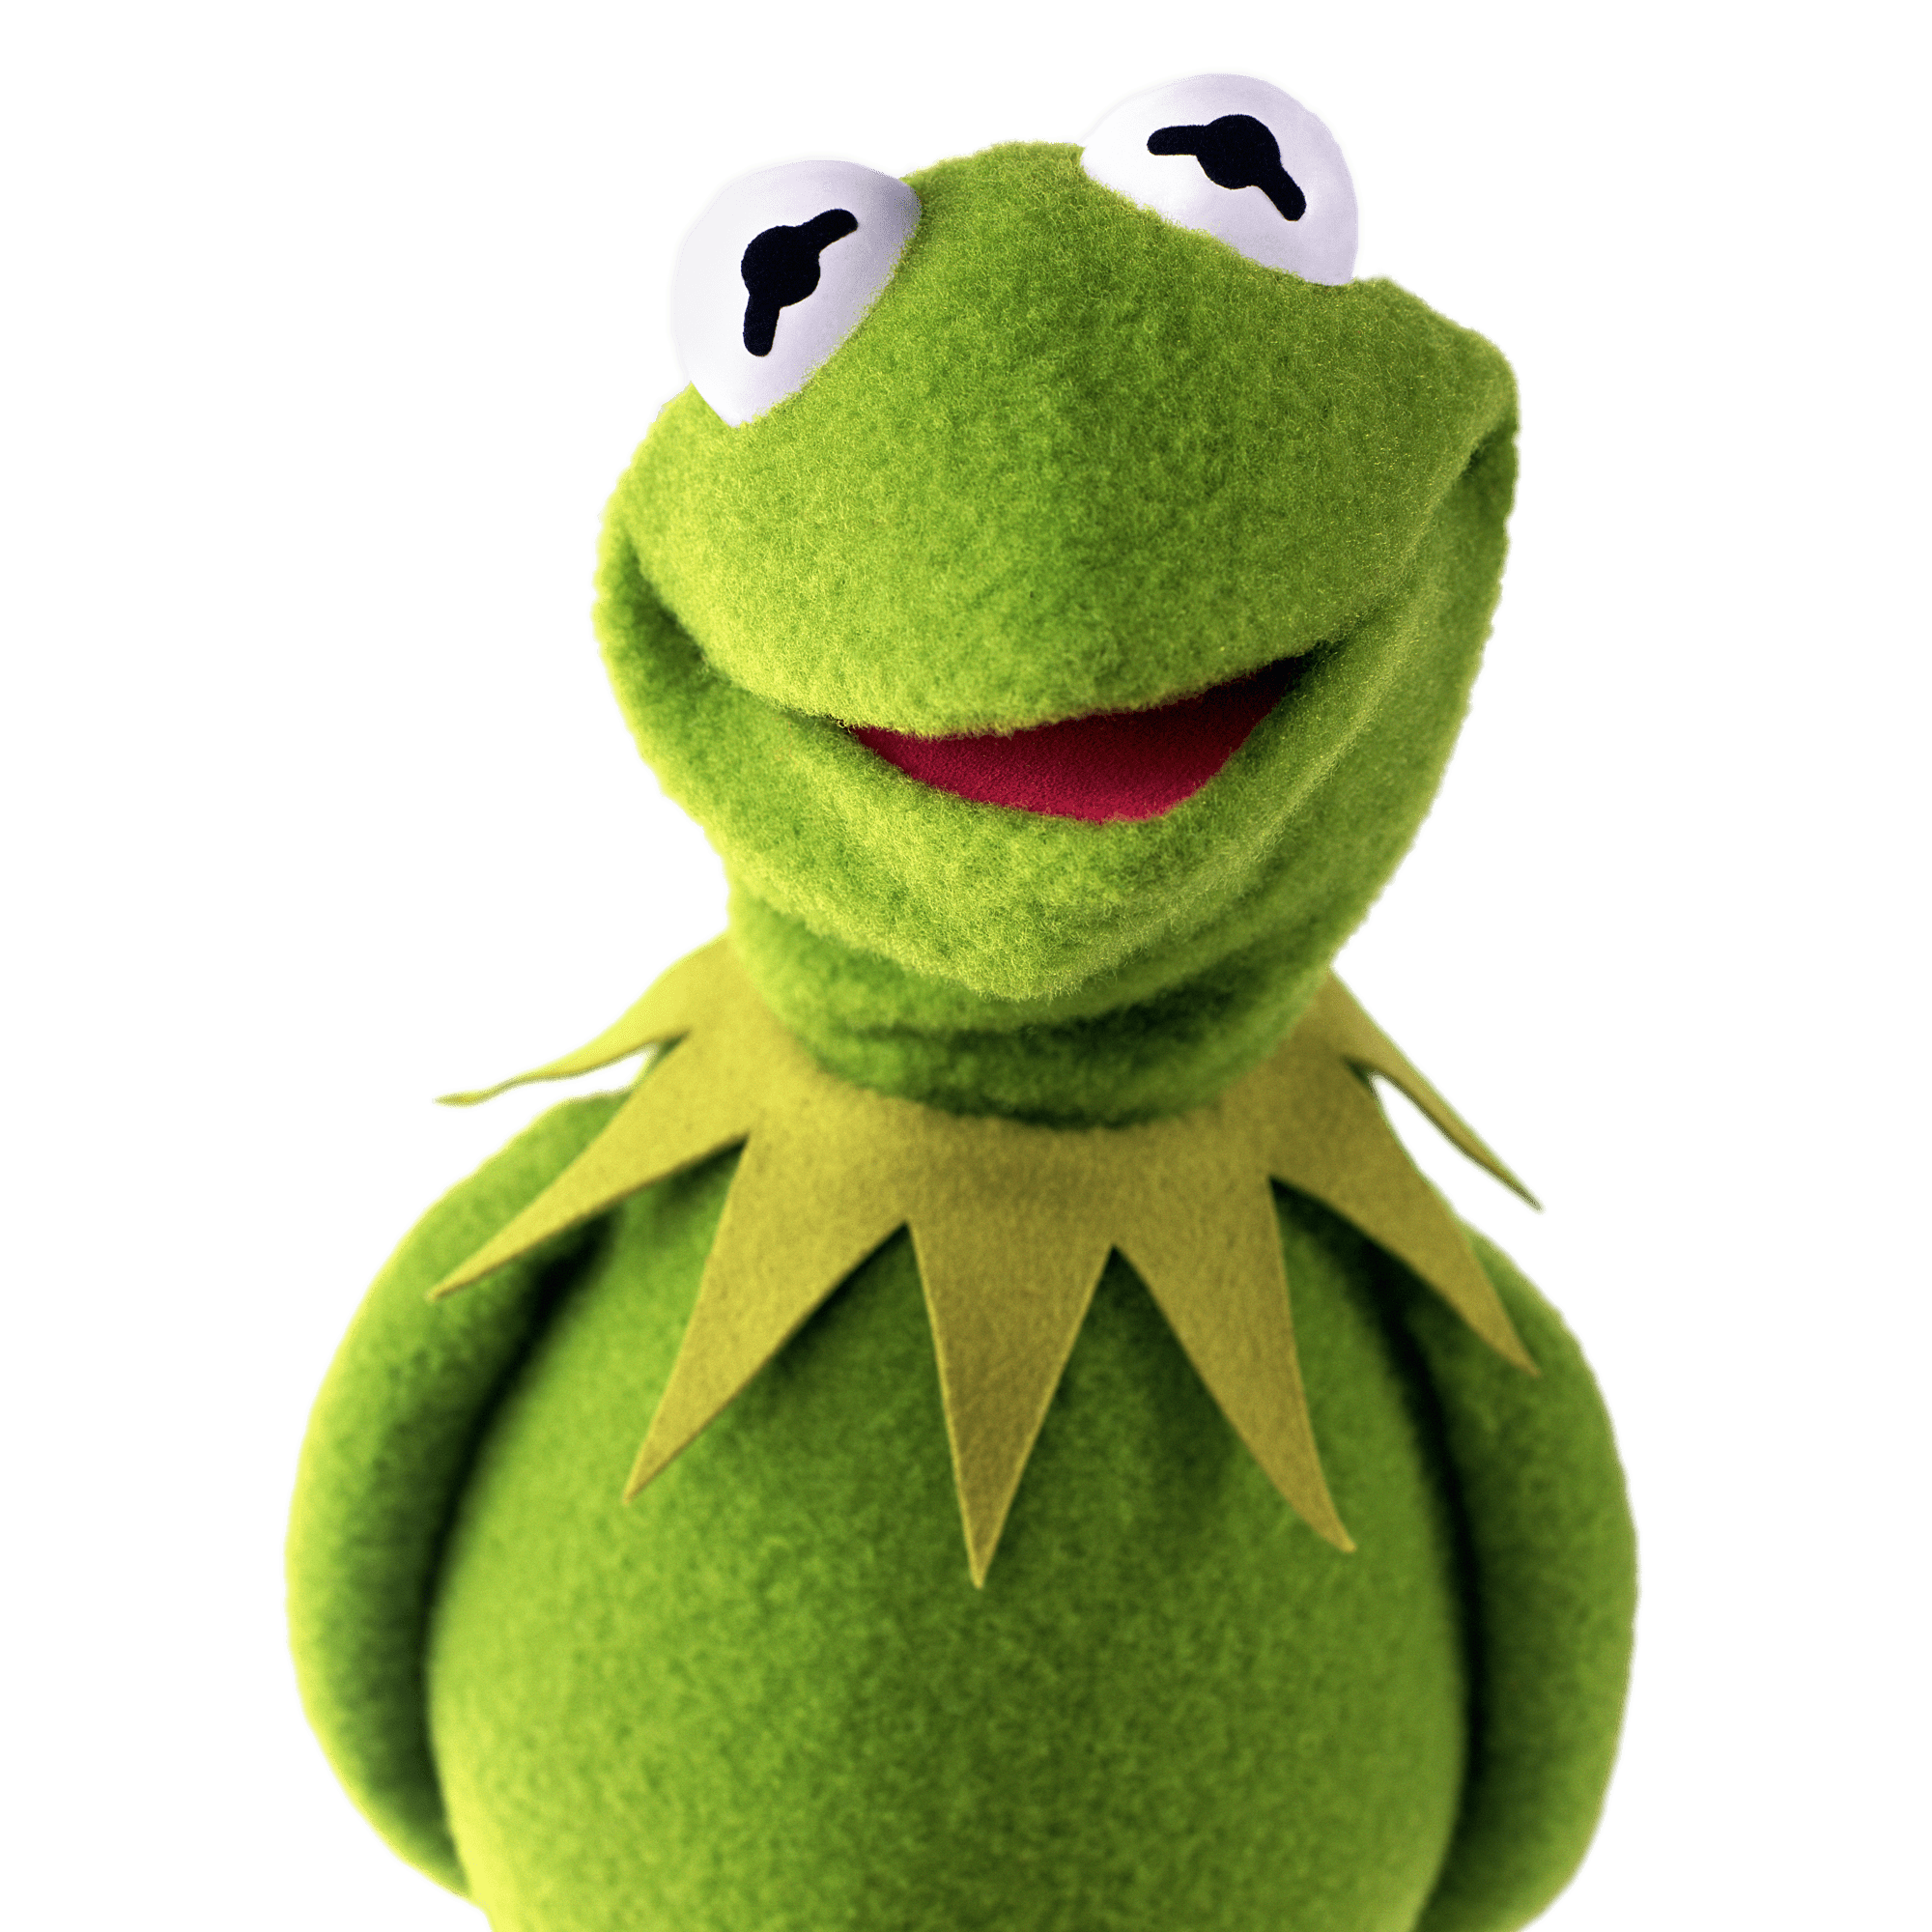 Kermit The Frog Wallpapers Top Free Kermit The Frog